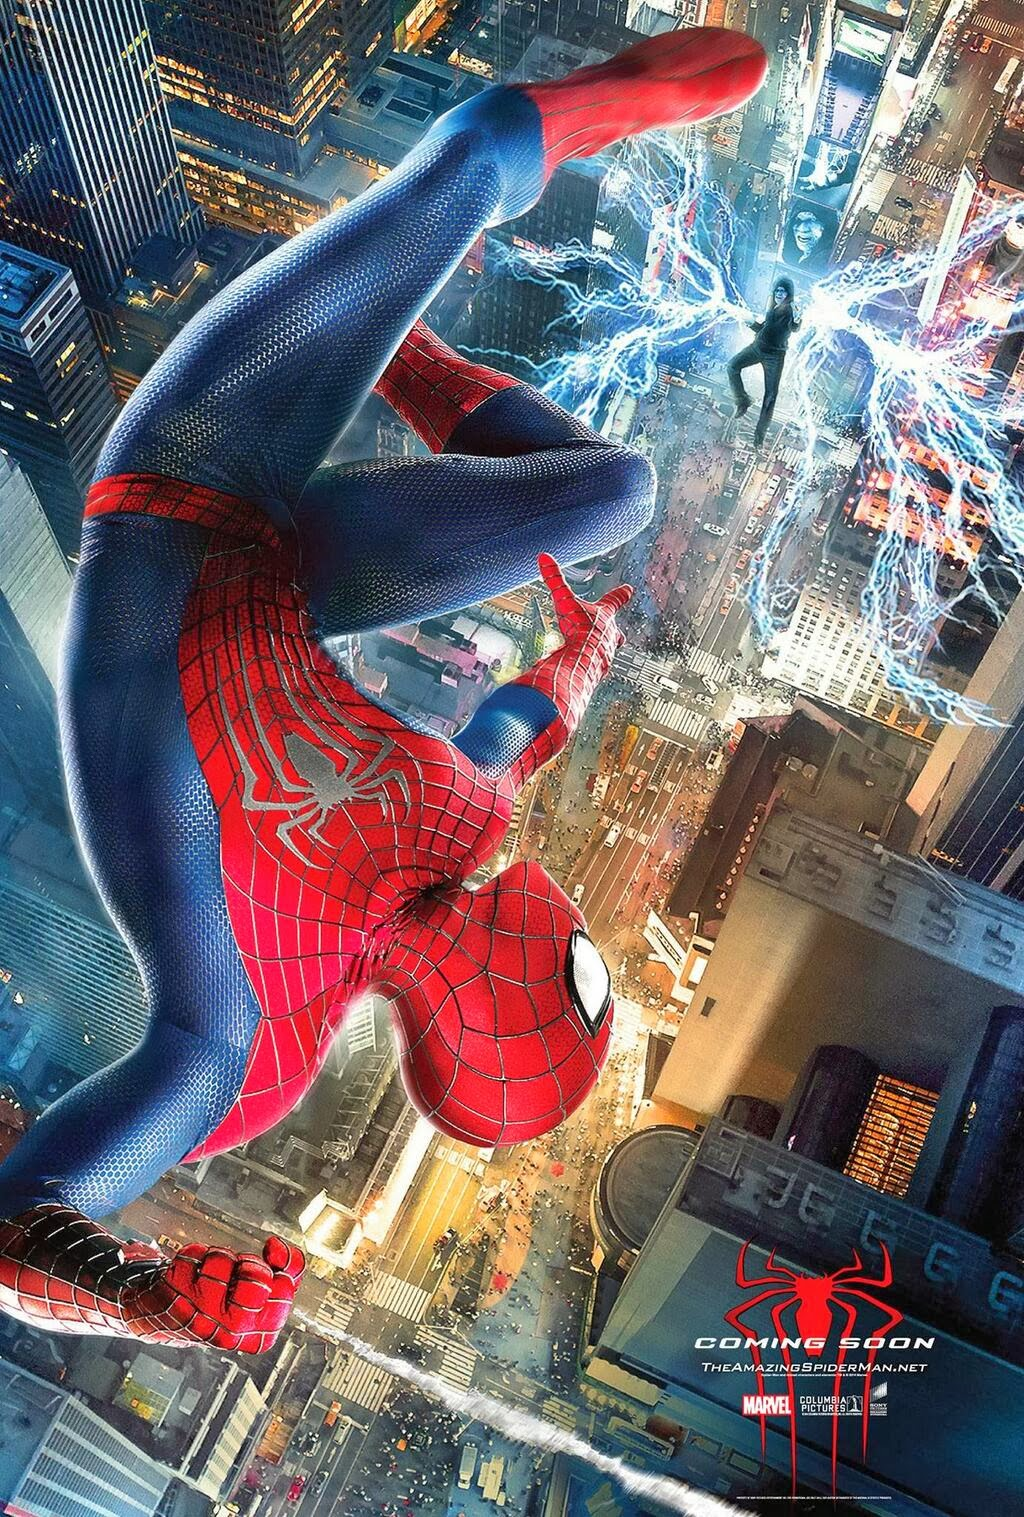 the amazing spiderman Everything you need to know about the amazing spider-man.